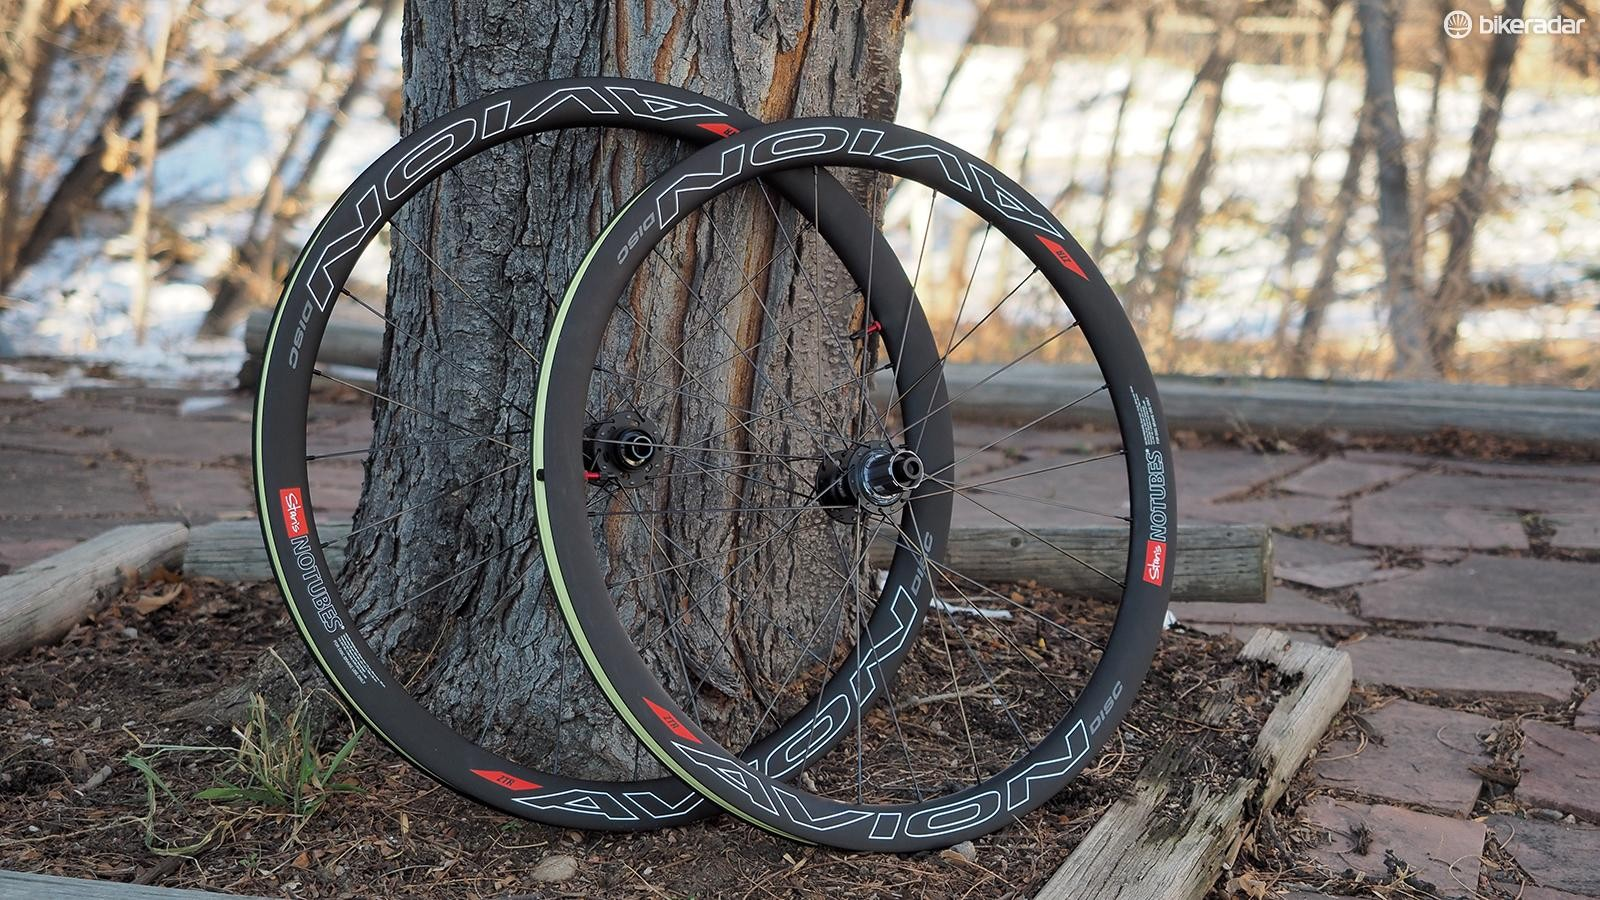 The Stan's NoTubes Avion Disc Pro may be the company's first aero carbon road offering but its performance and design rival offerings from companies with far more experience